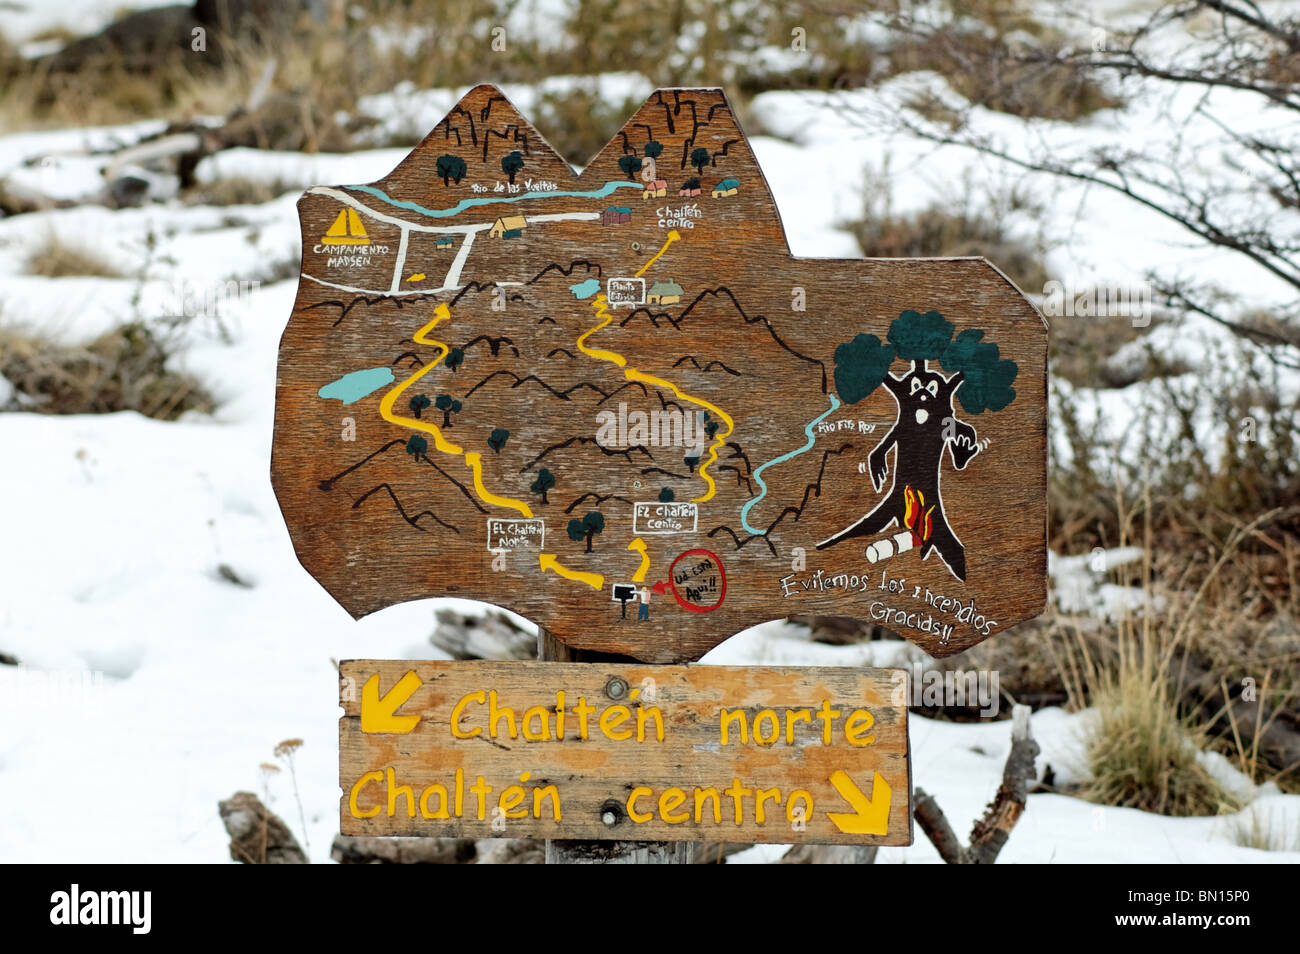 Trails Map Stock Photos & Trails Map Stock Images - Alamy